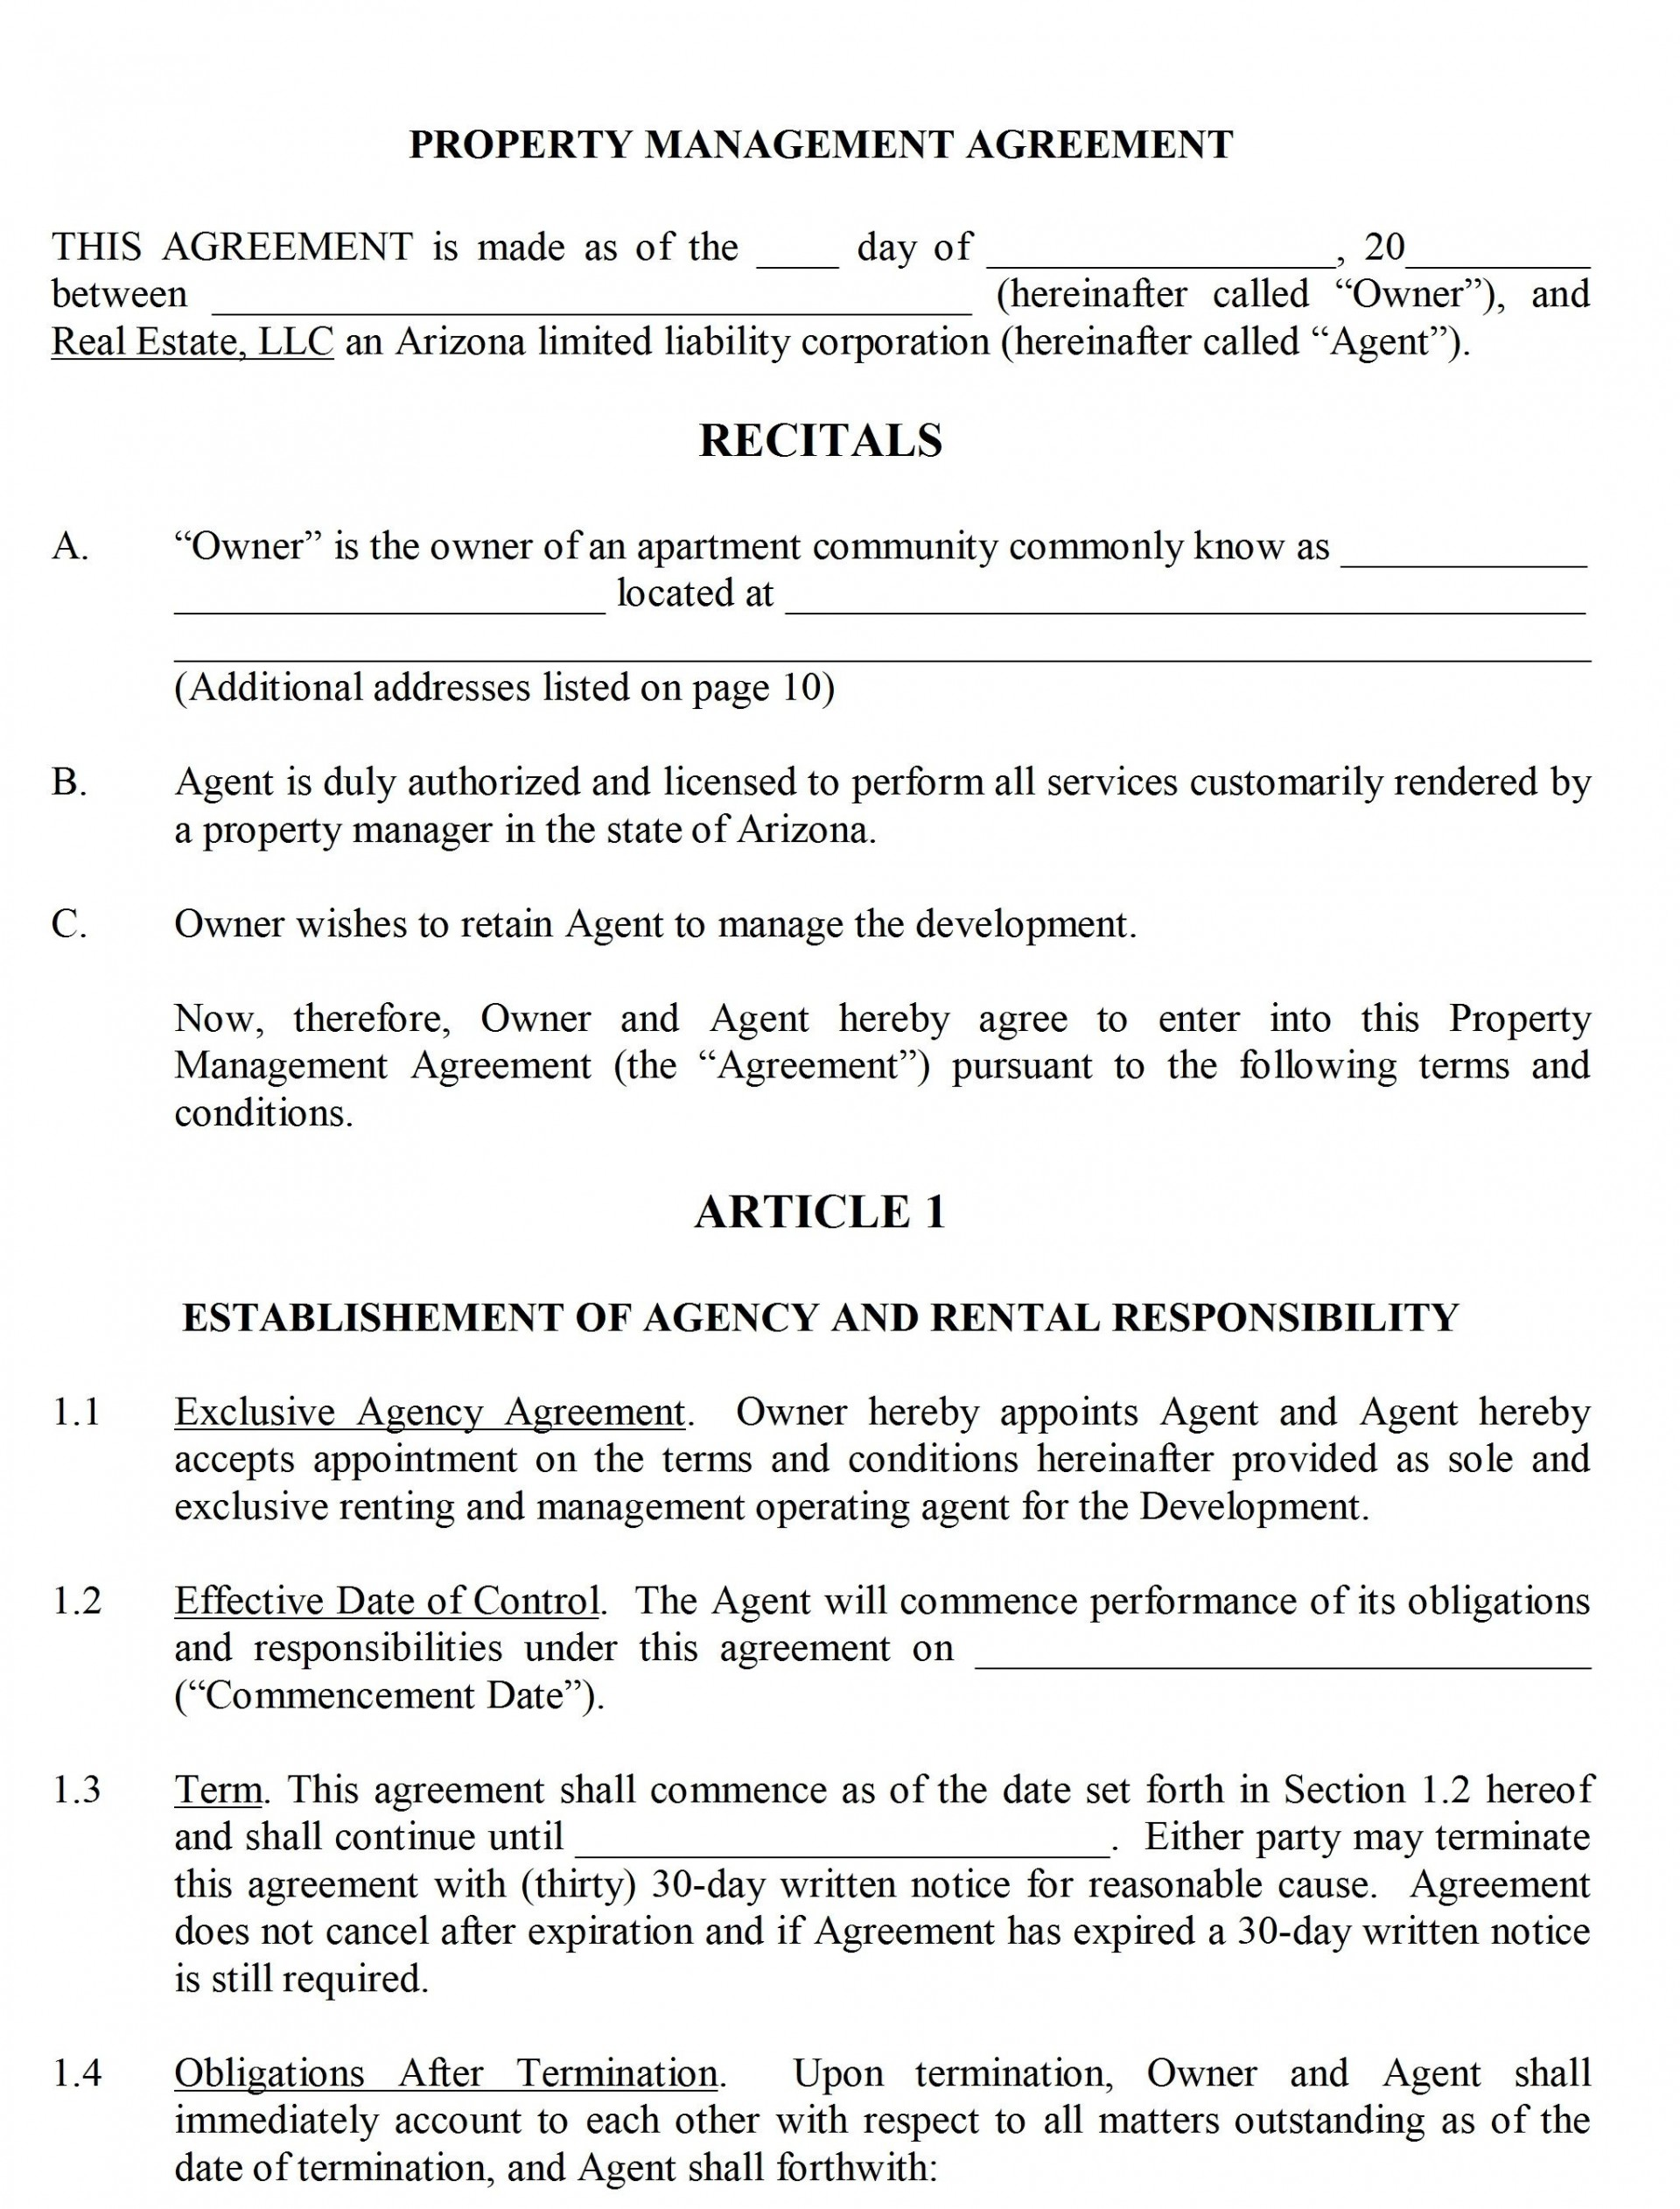 004 Shocking Property Management Contract Form Inspiration  Sample Agreement Template Free Uk1920